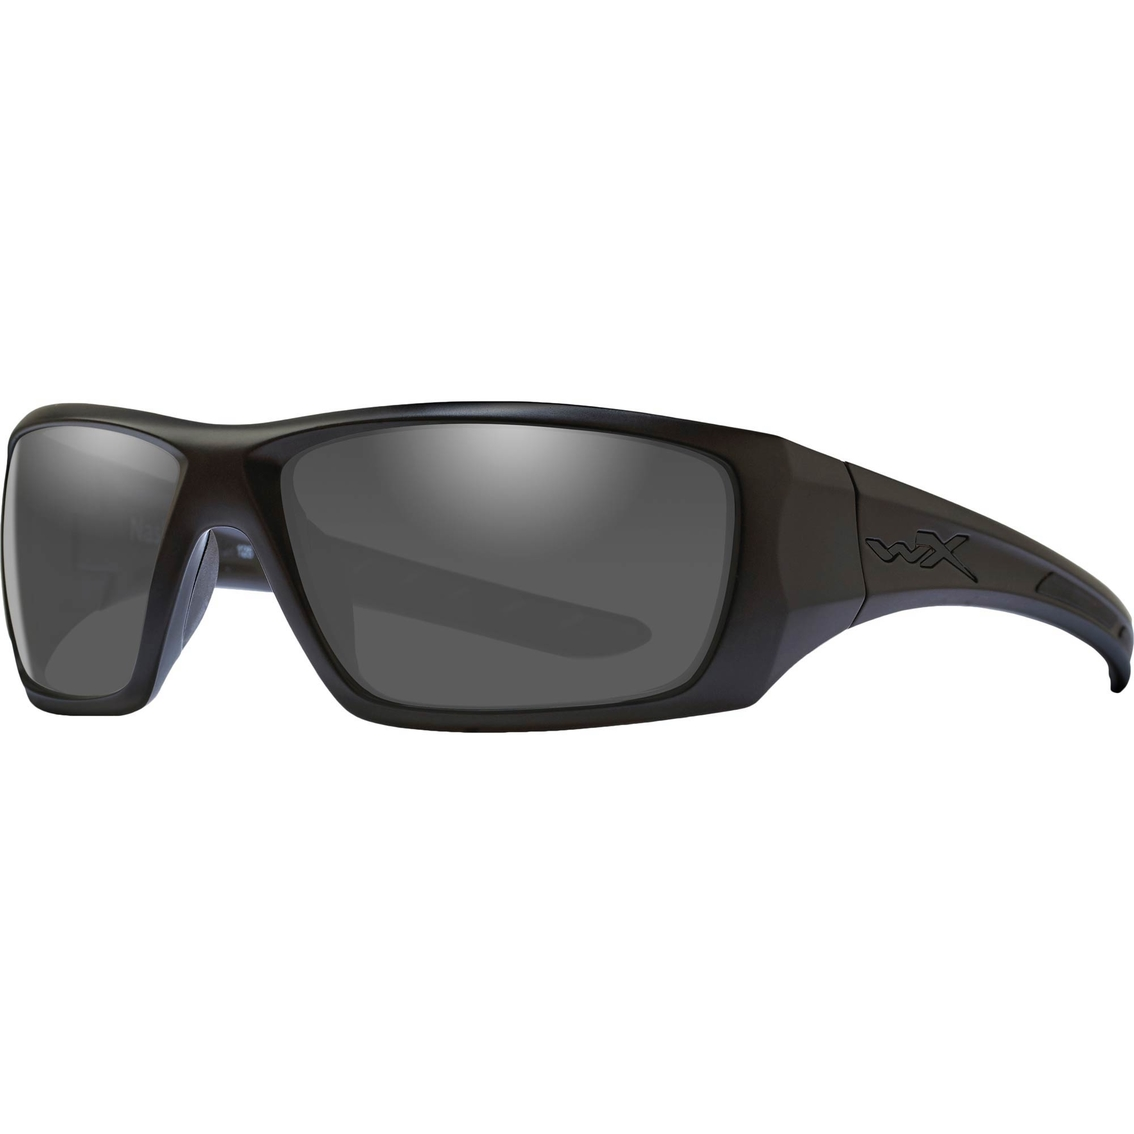 ab0e6909ca Wiley X Valor Kryptek Sunglasses